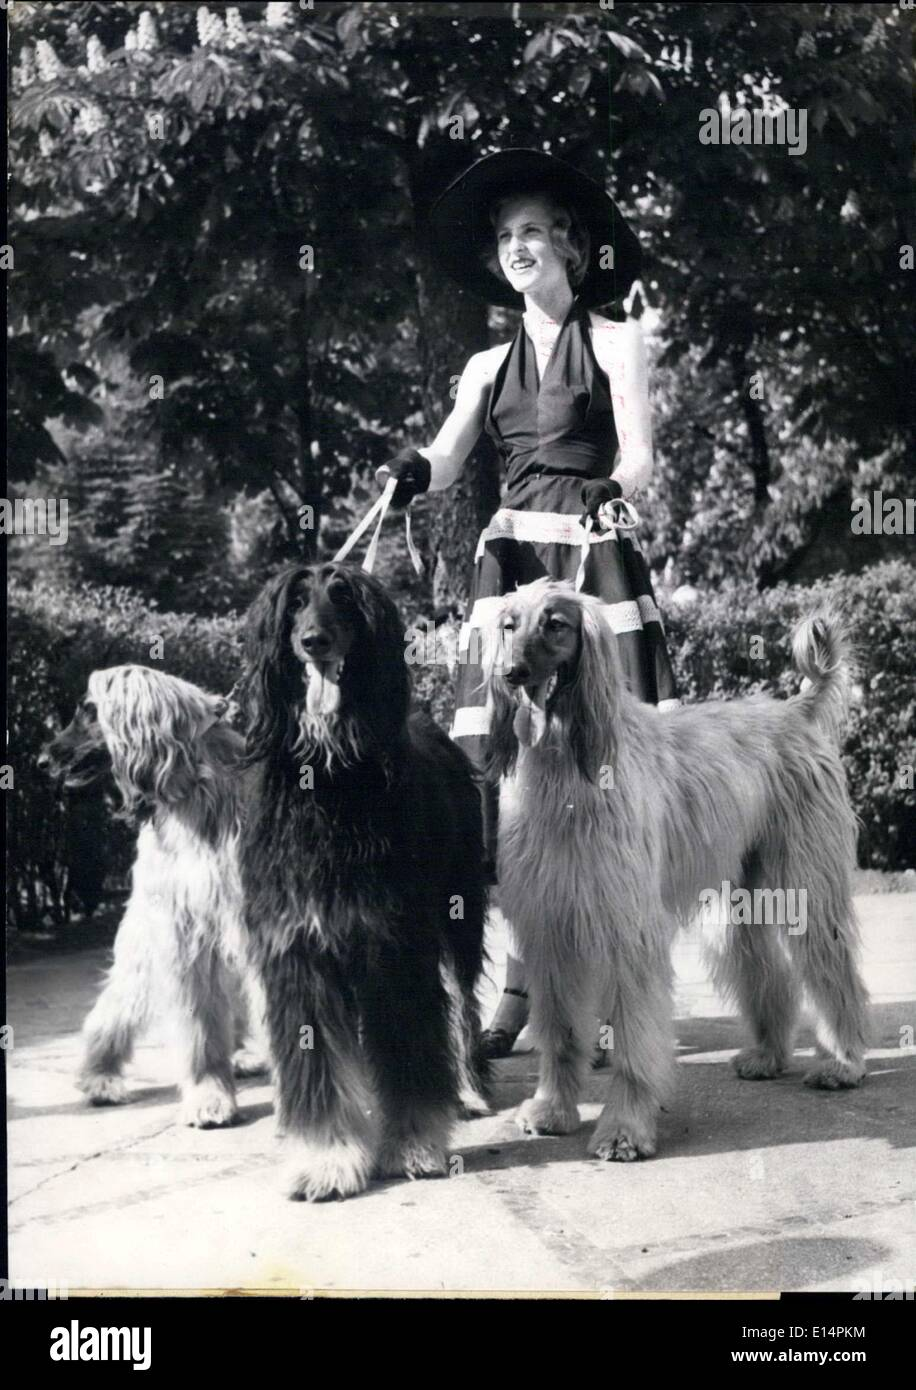 Apr. 12, 2012 - Marie Coper Royer & her afghan hounds - Stock Image